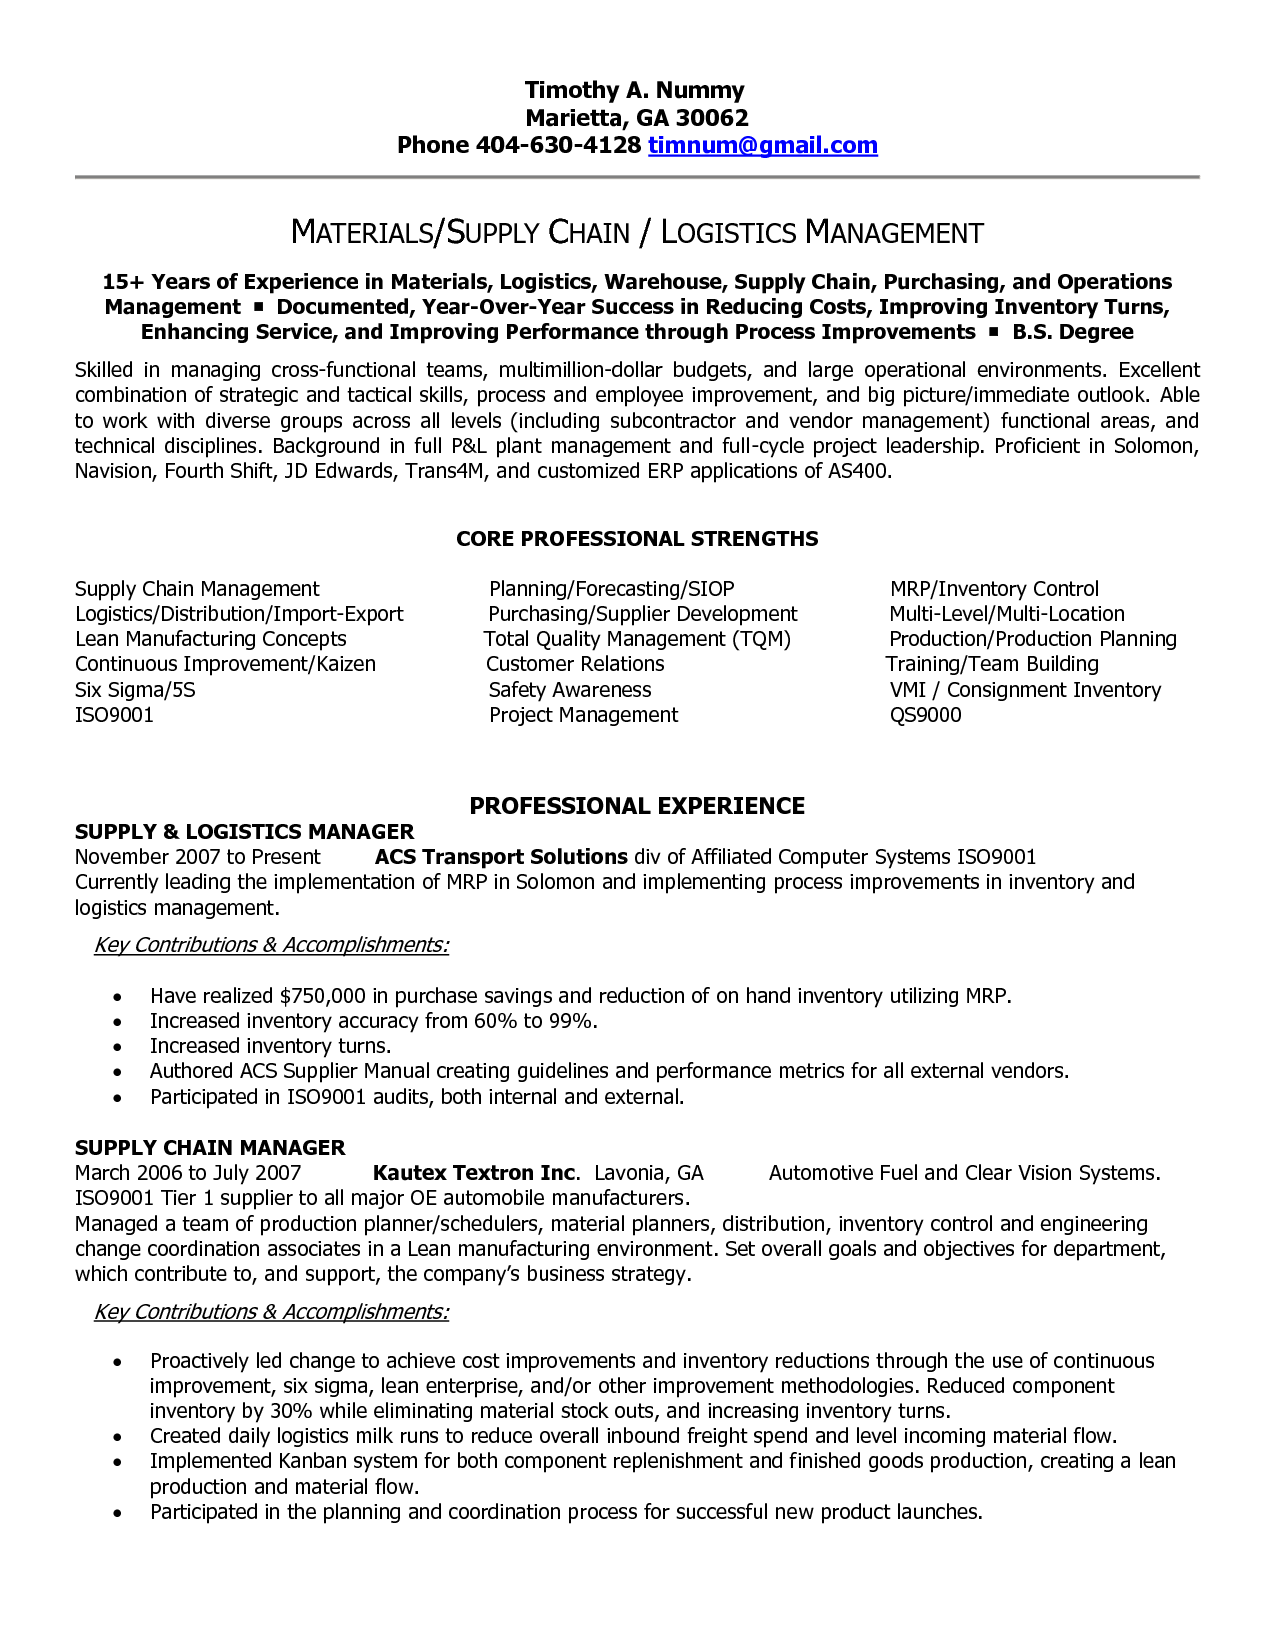 Resume Format For Purchase Manager Supply Chain Resume Templates Supply Chain Manager In